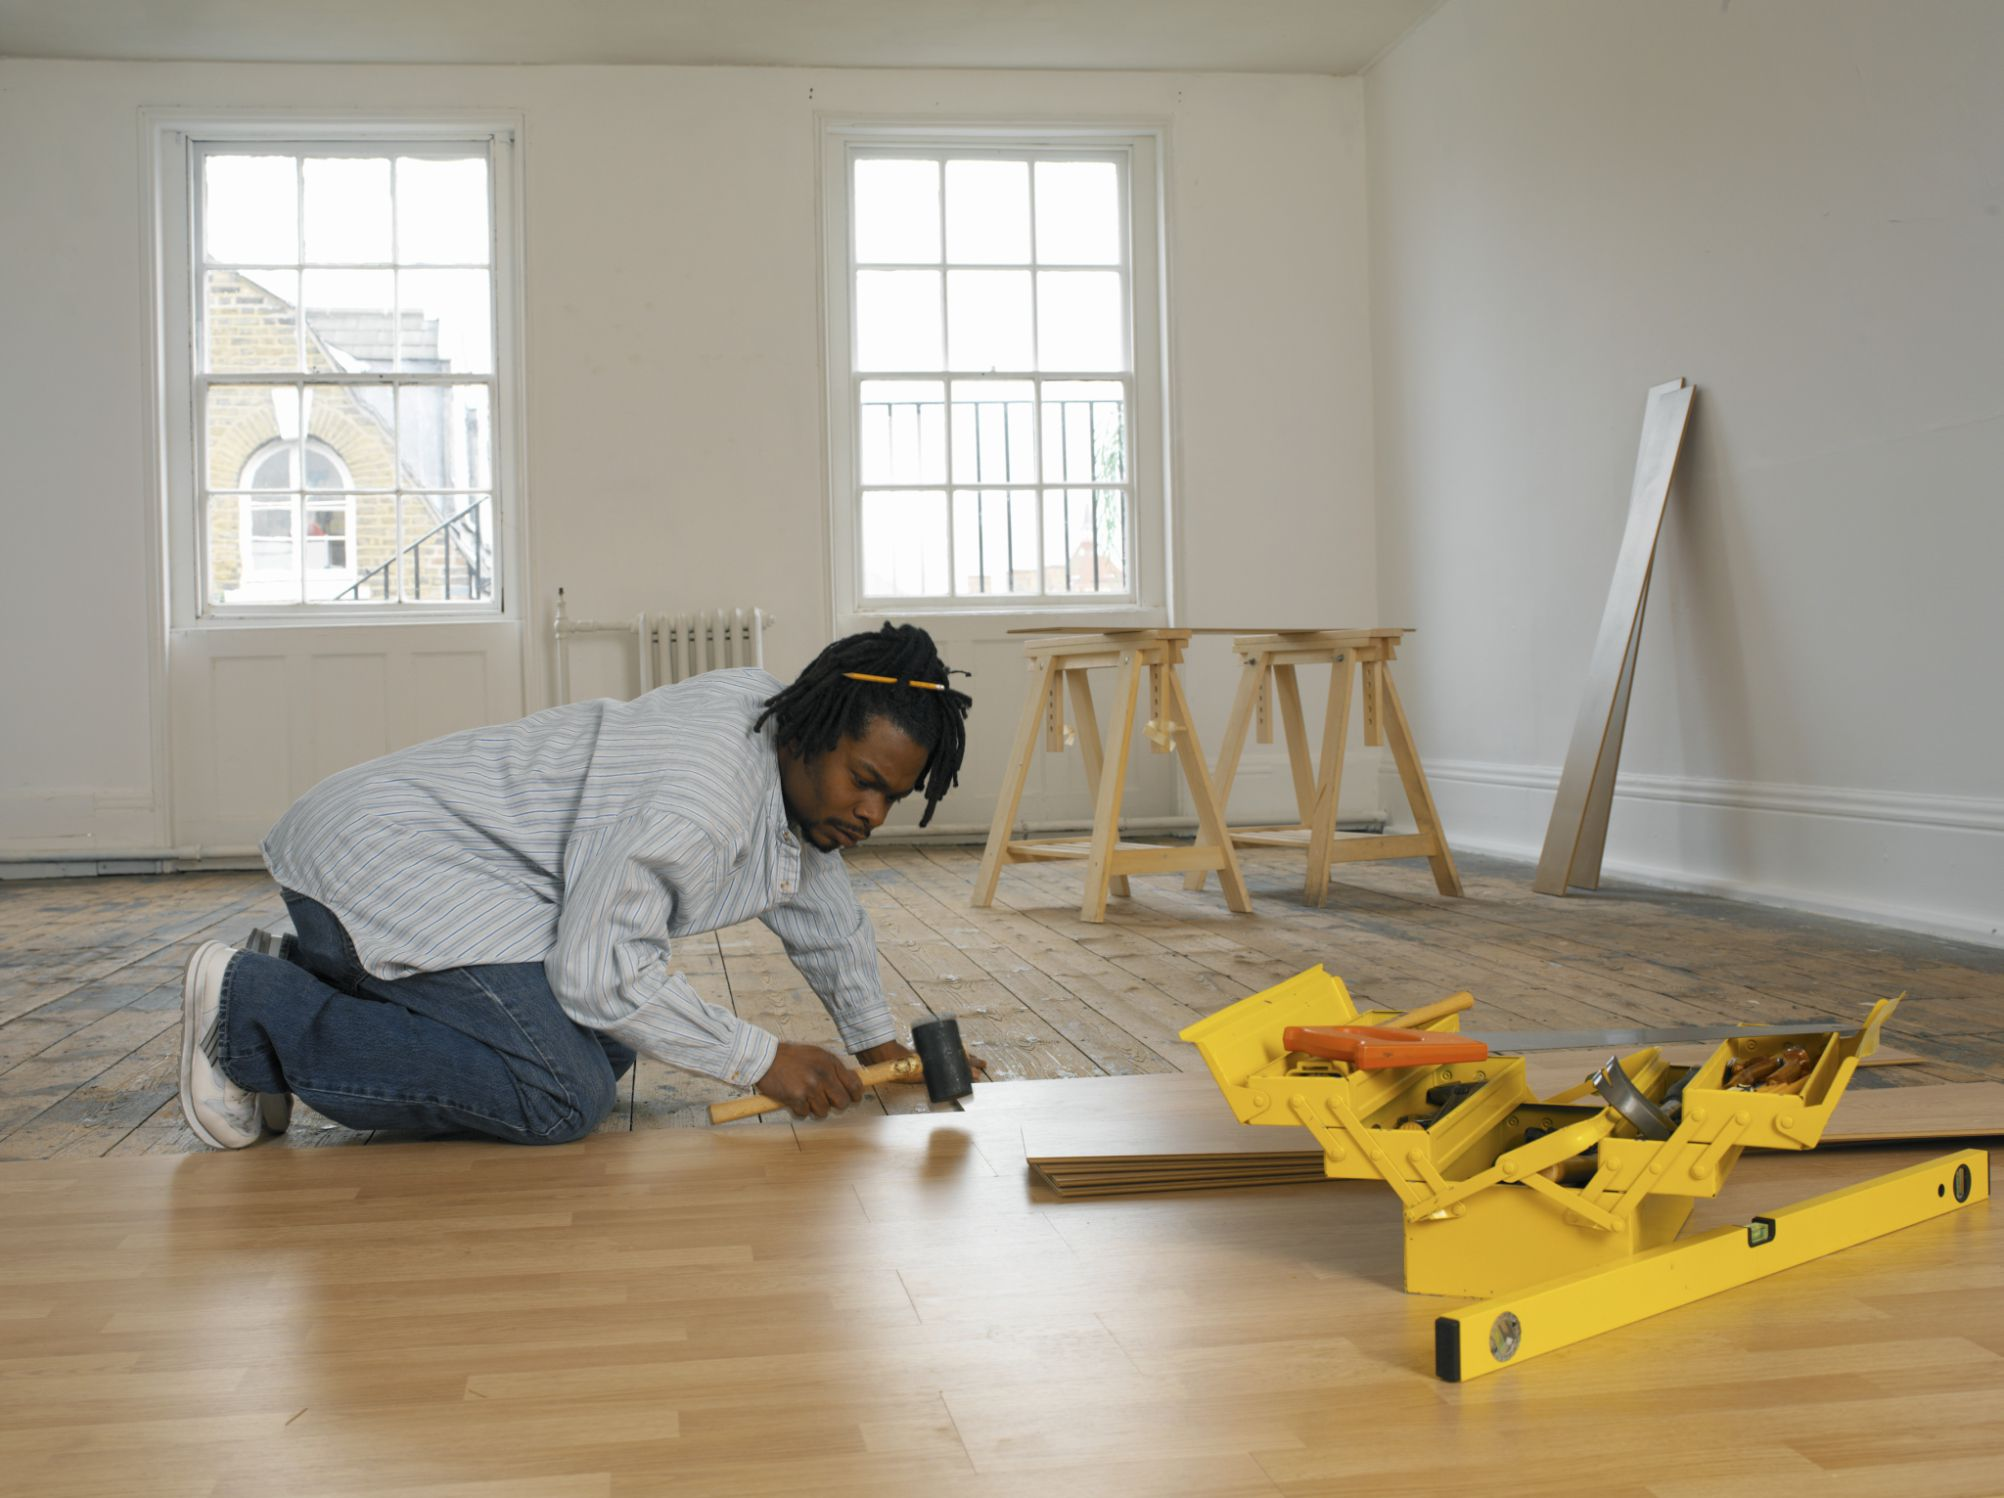 Professional Laminate Floor Installations - DIY or Hire a Pro?